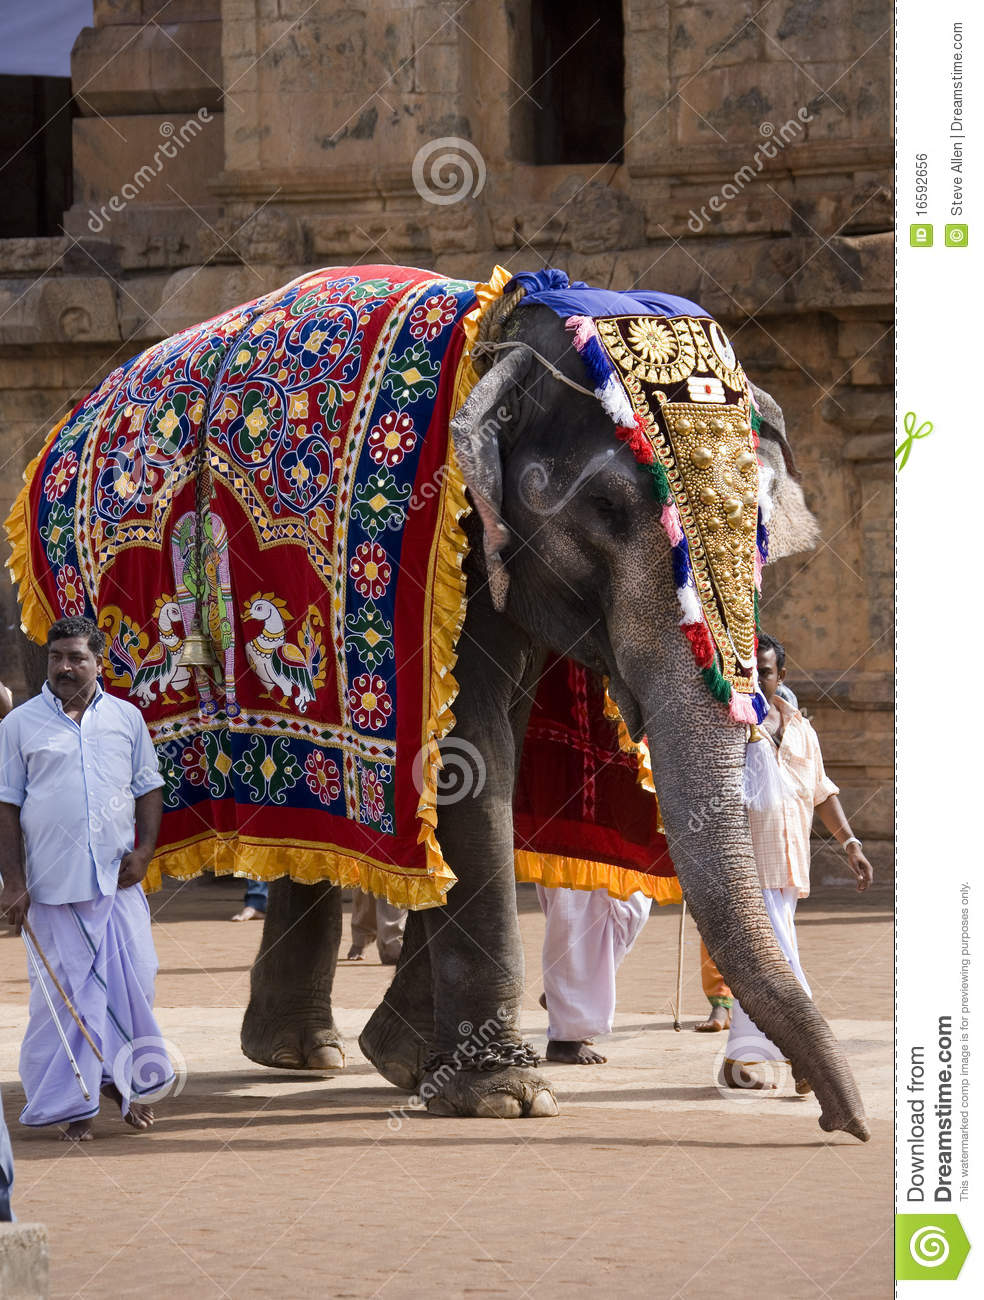 Temple Elephant - Thanjavur - Tamil Nadu - India